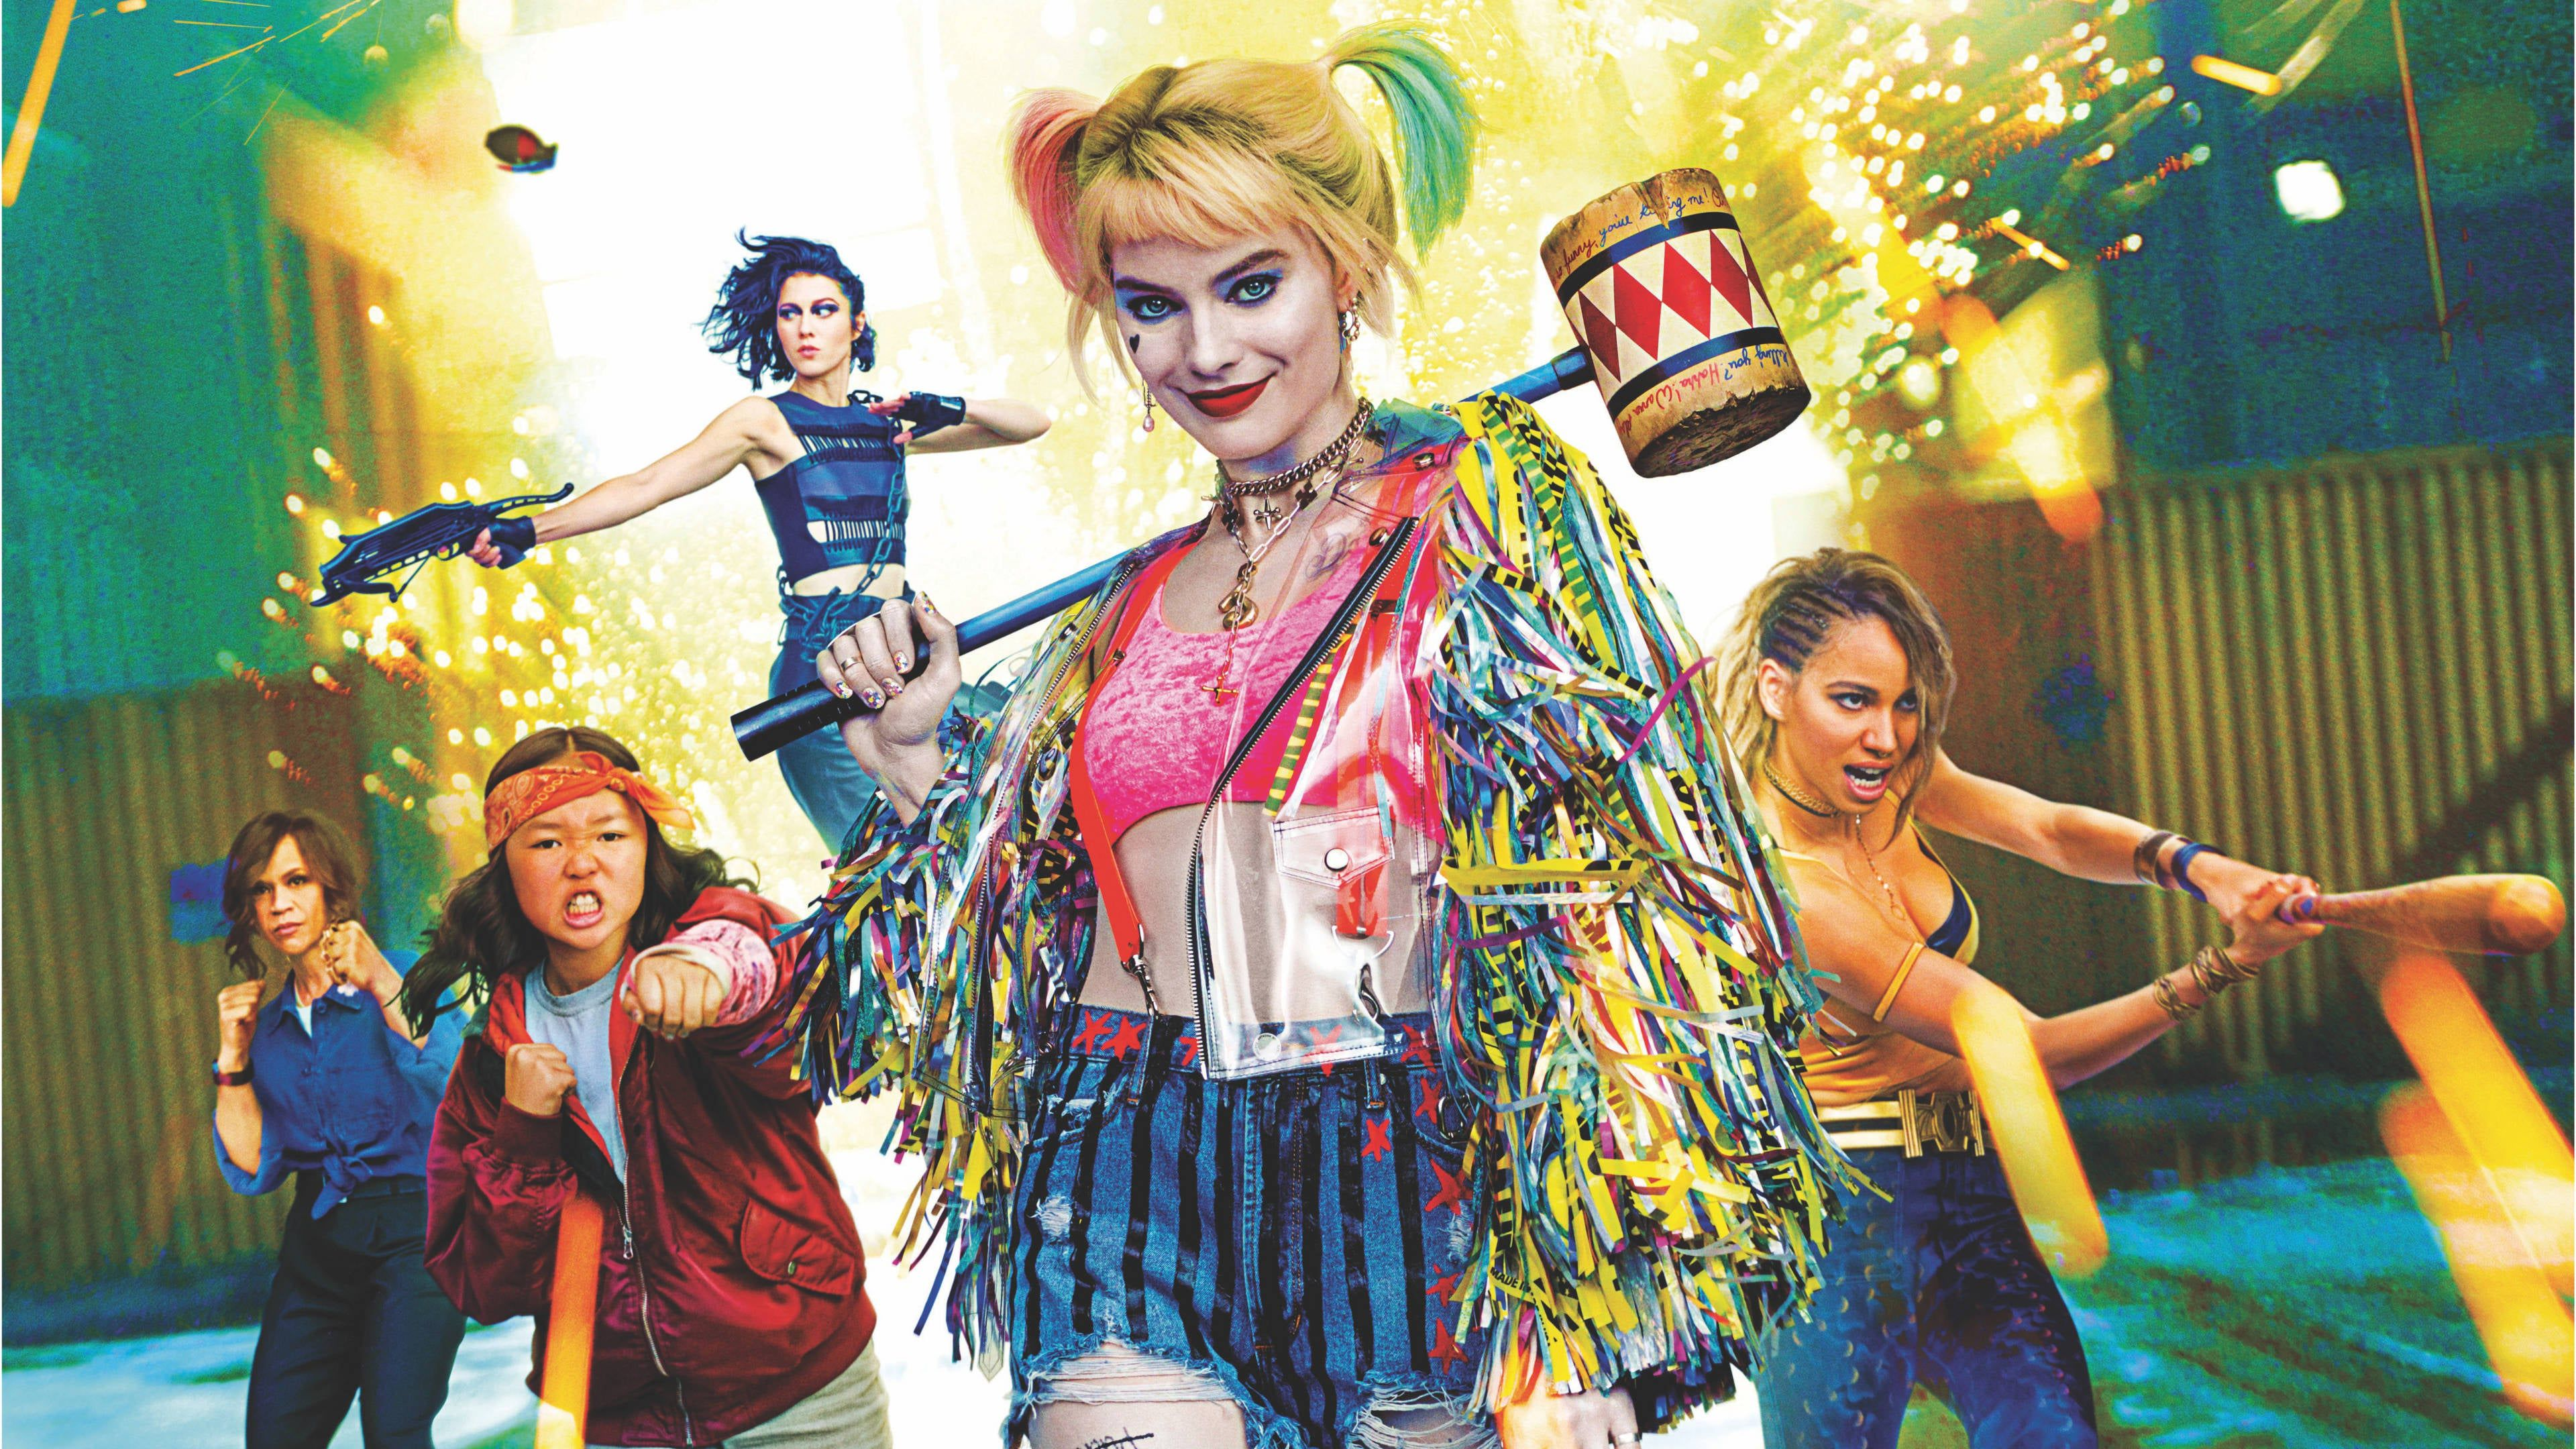 Birds of Prey (and the Fantabulous Emancipation of One Harley Quinn) 2020 123movies